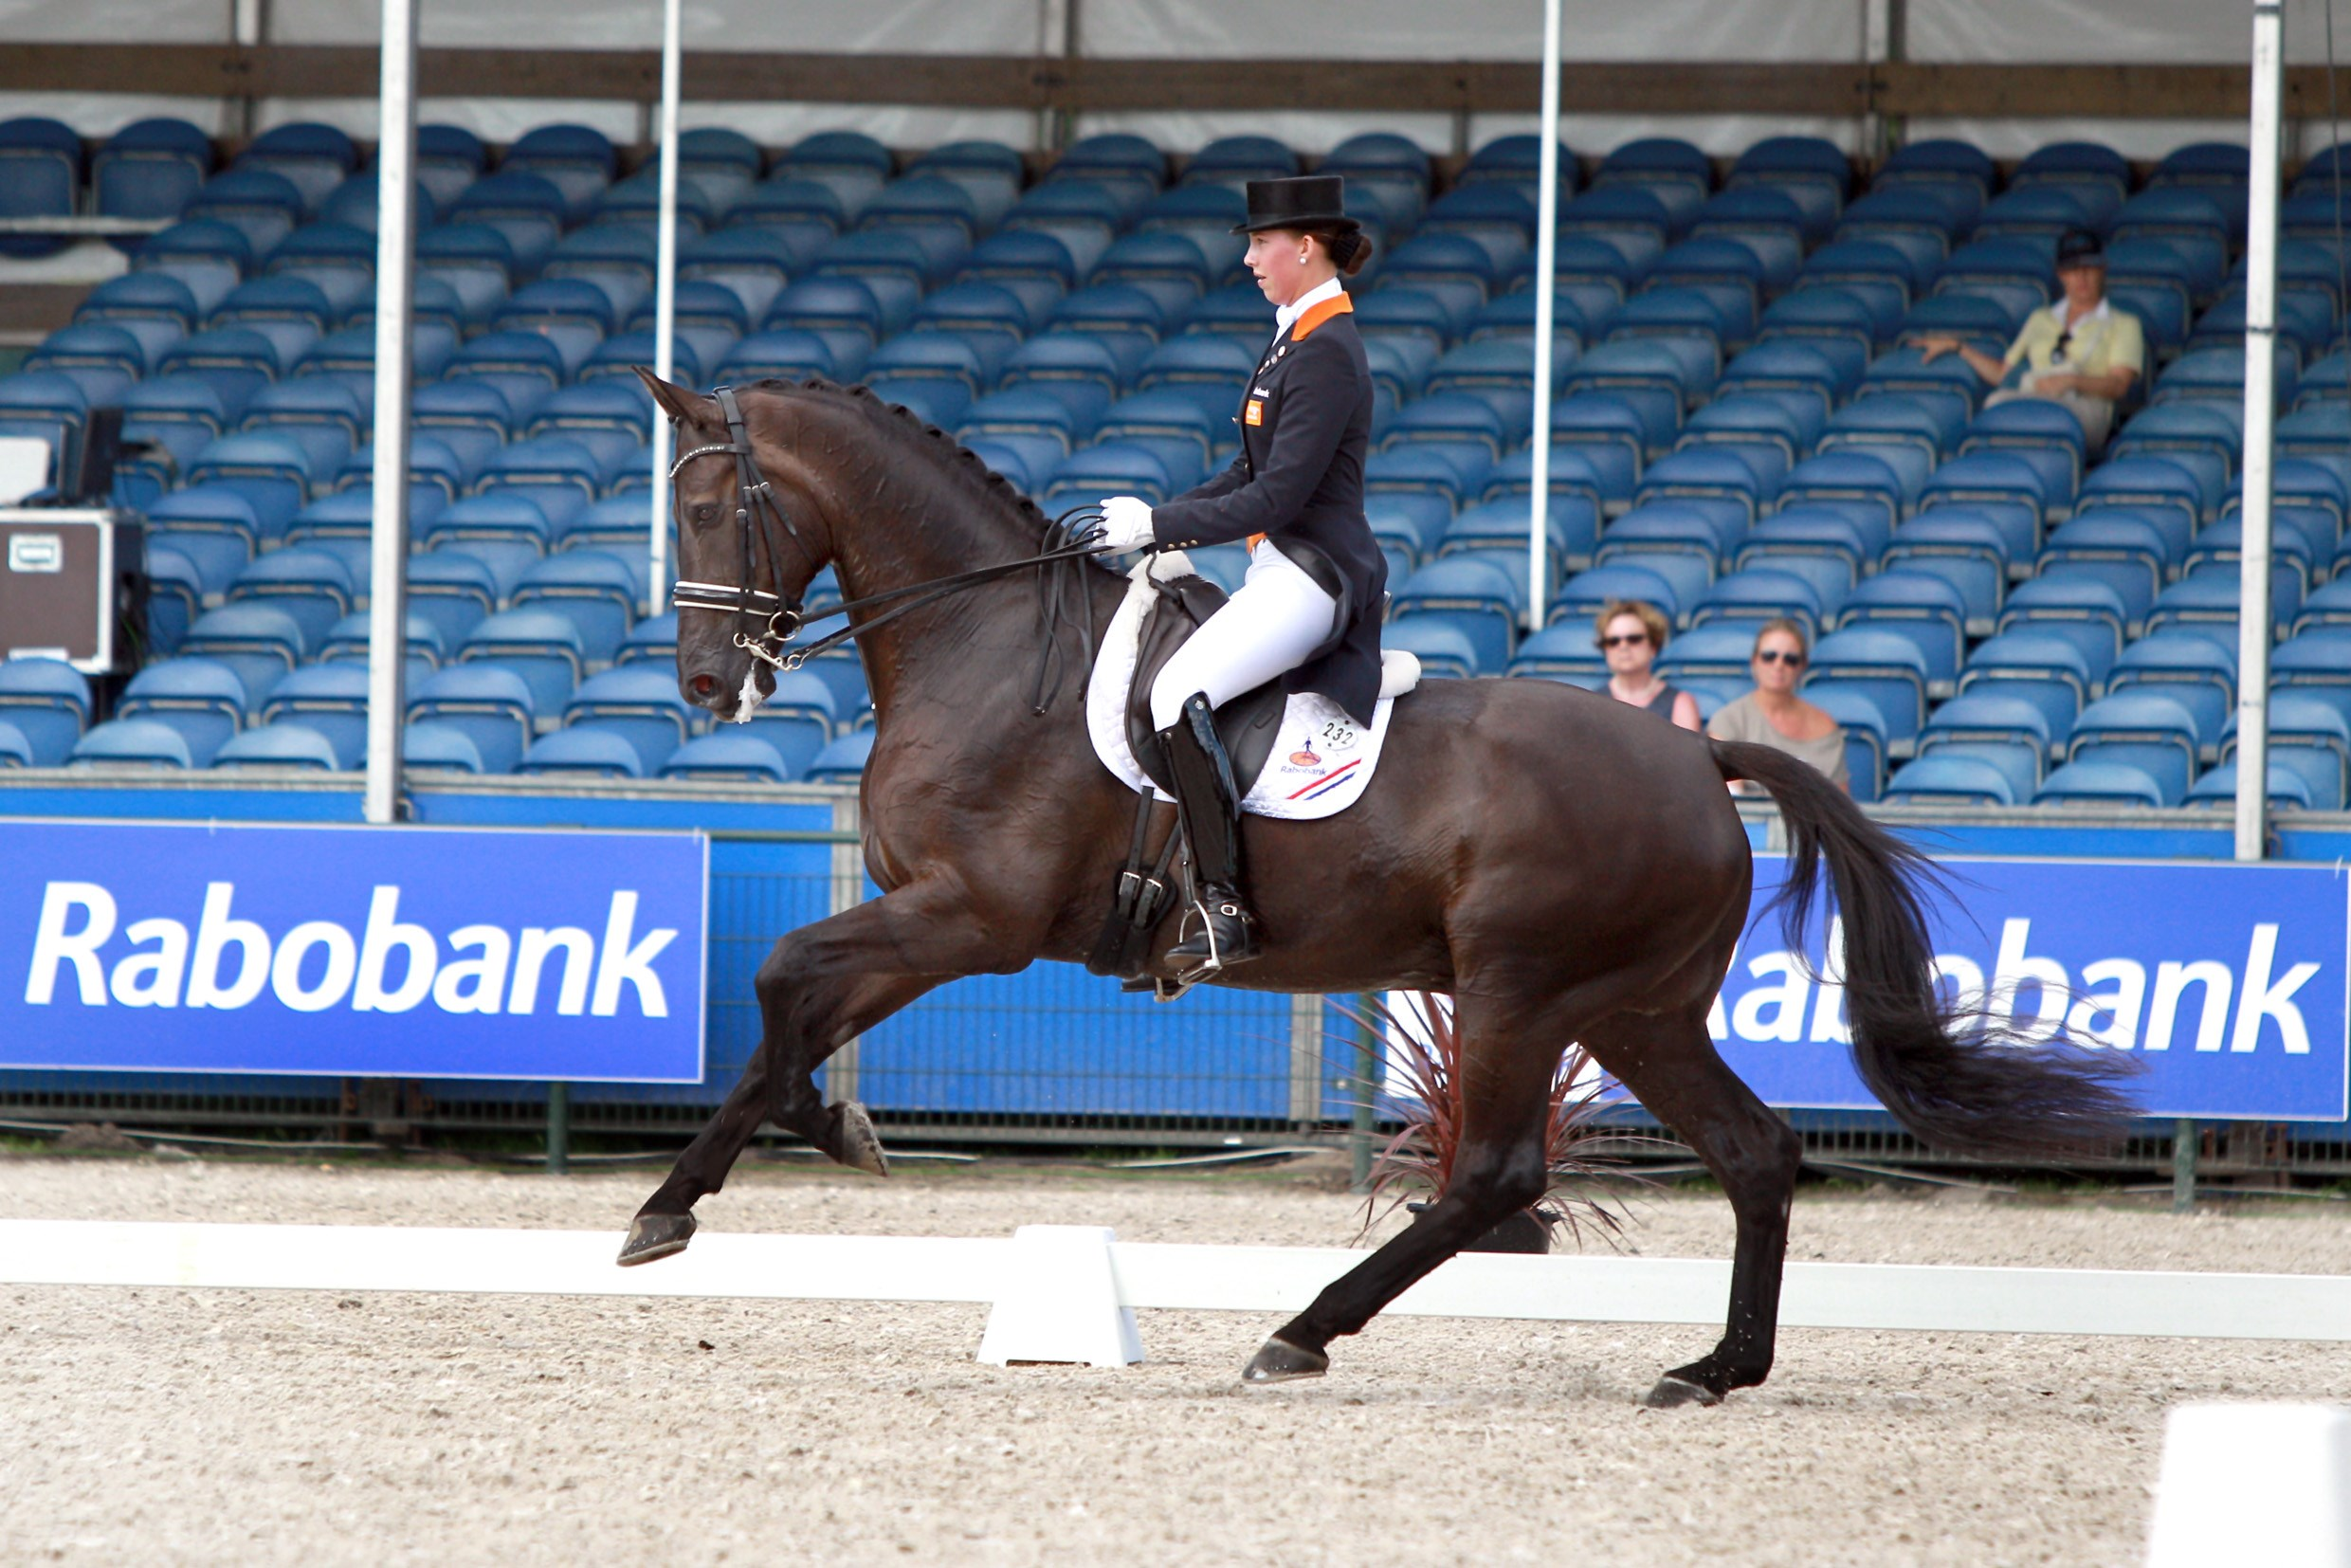 Stephanie Kooijman neemt leiding in NK Young Riders